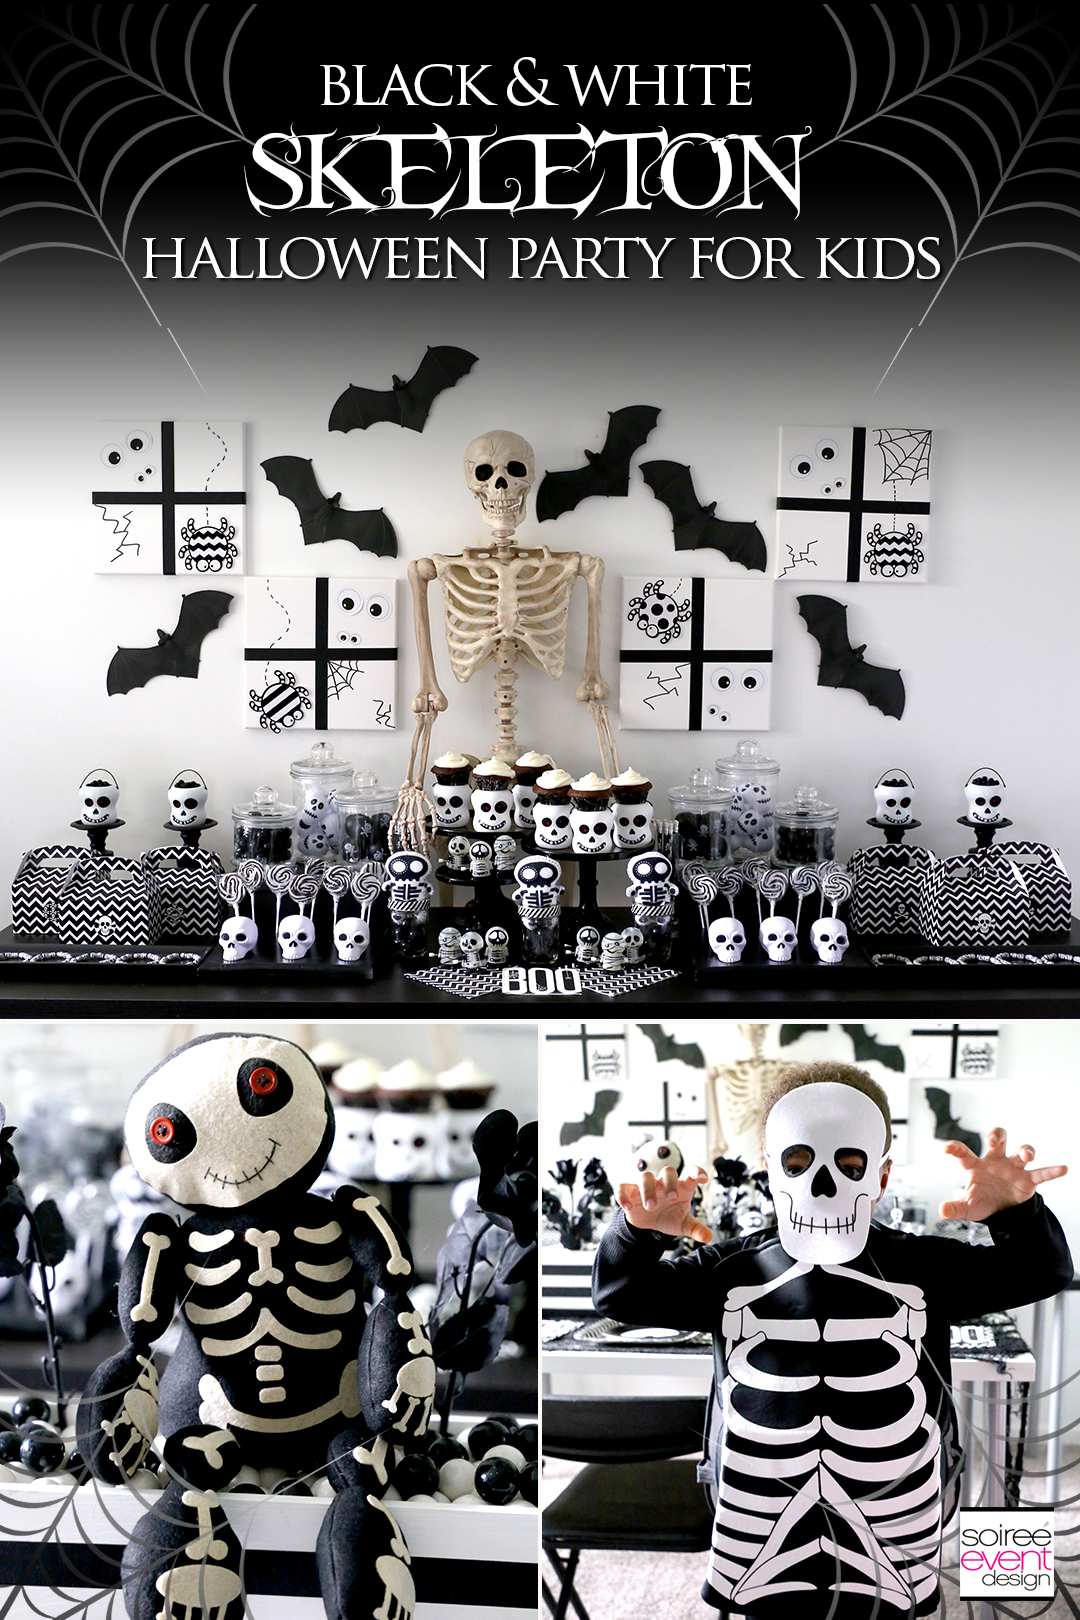 Check out this spooky cute black and white Skeleton Halloween Party for kids featuring a stunning candy table, Trick-or-Treat cupcakes + free printables!